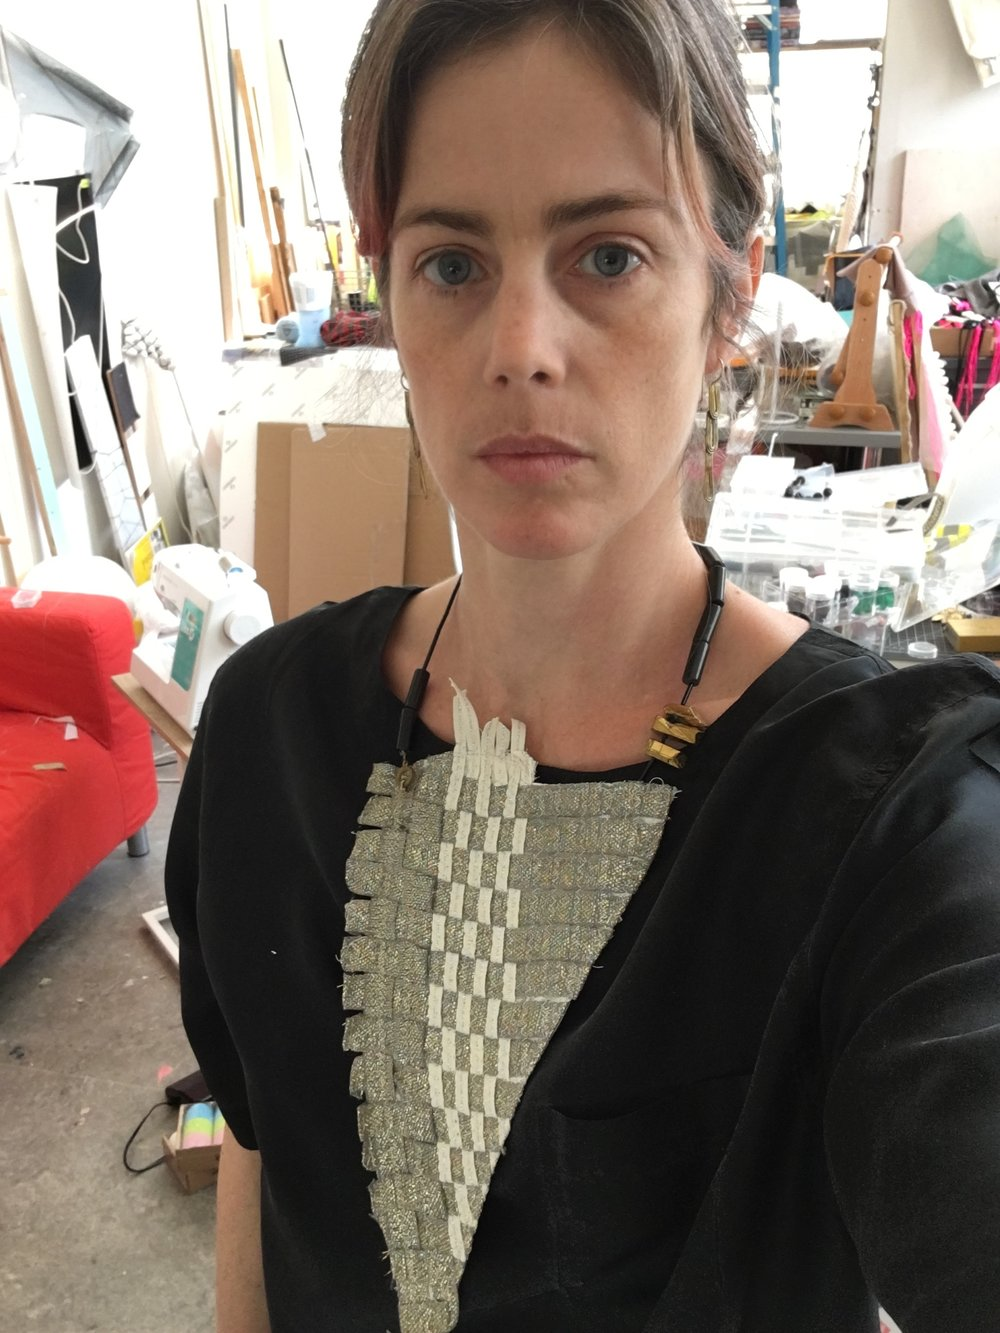 Dissent Collar #19 (seam binding, thread, ceramic and metallic beads, cotton cord)